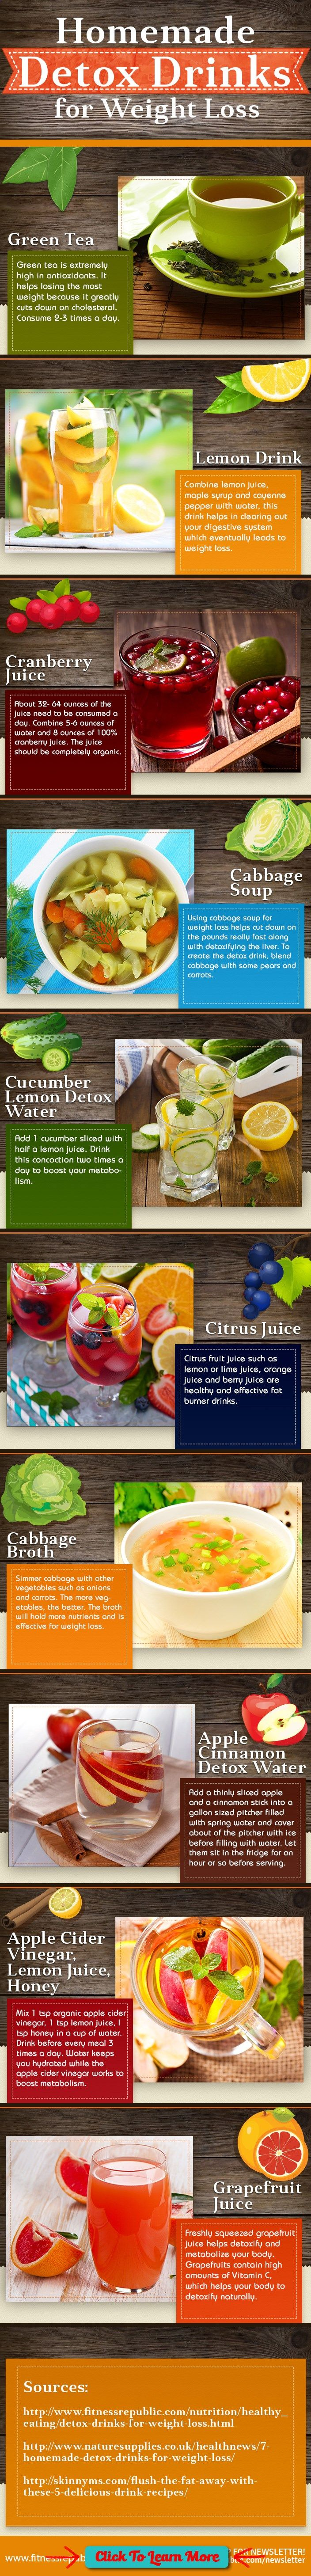 #FastestWayToLoseWeight by EATING, Click to learn more, Longing to shed some pounds? Using detox drinks to lose weight has become very popular because the procedure is natural, organic and happens in a relatively shorter time period. , #HealthyRecipes, #FitnessRecipes, #BurnFatRecipes, #WeightLossRecipes, #WeightLossDiets